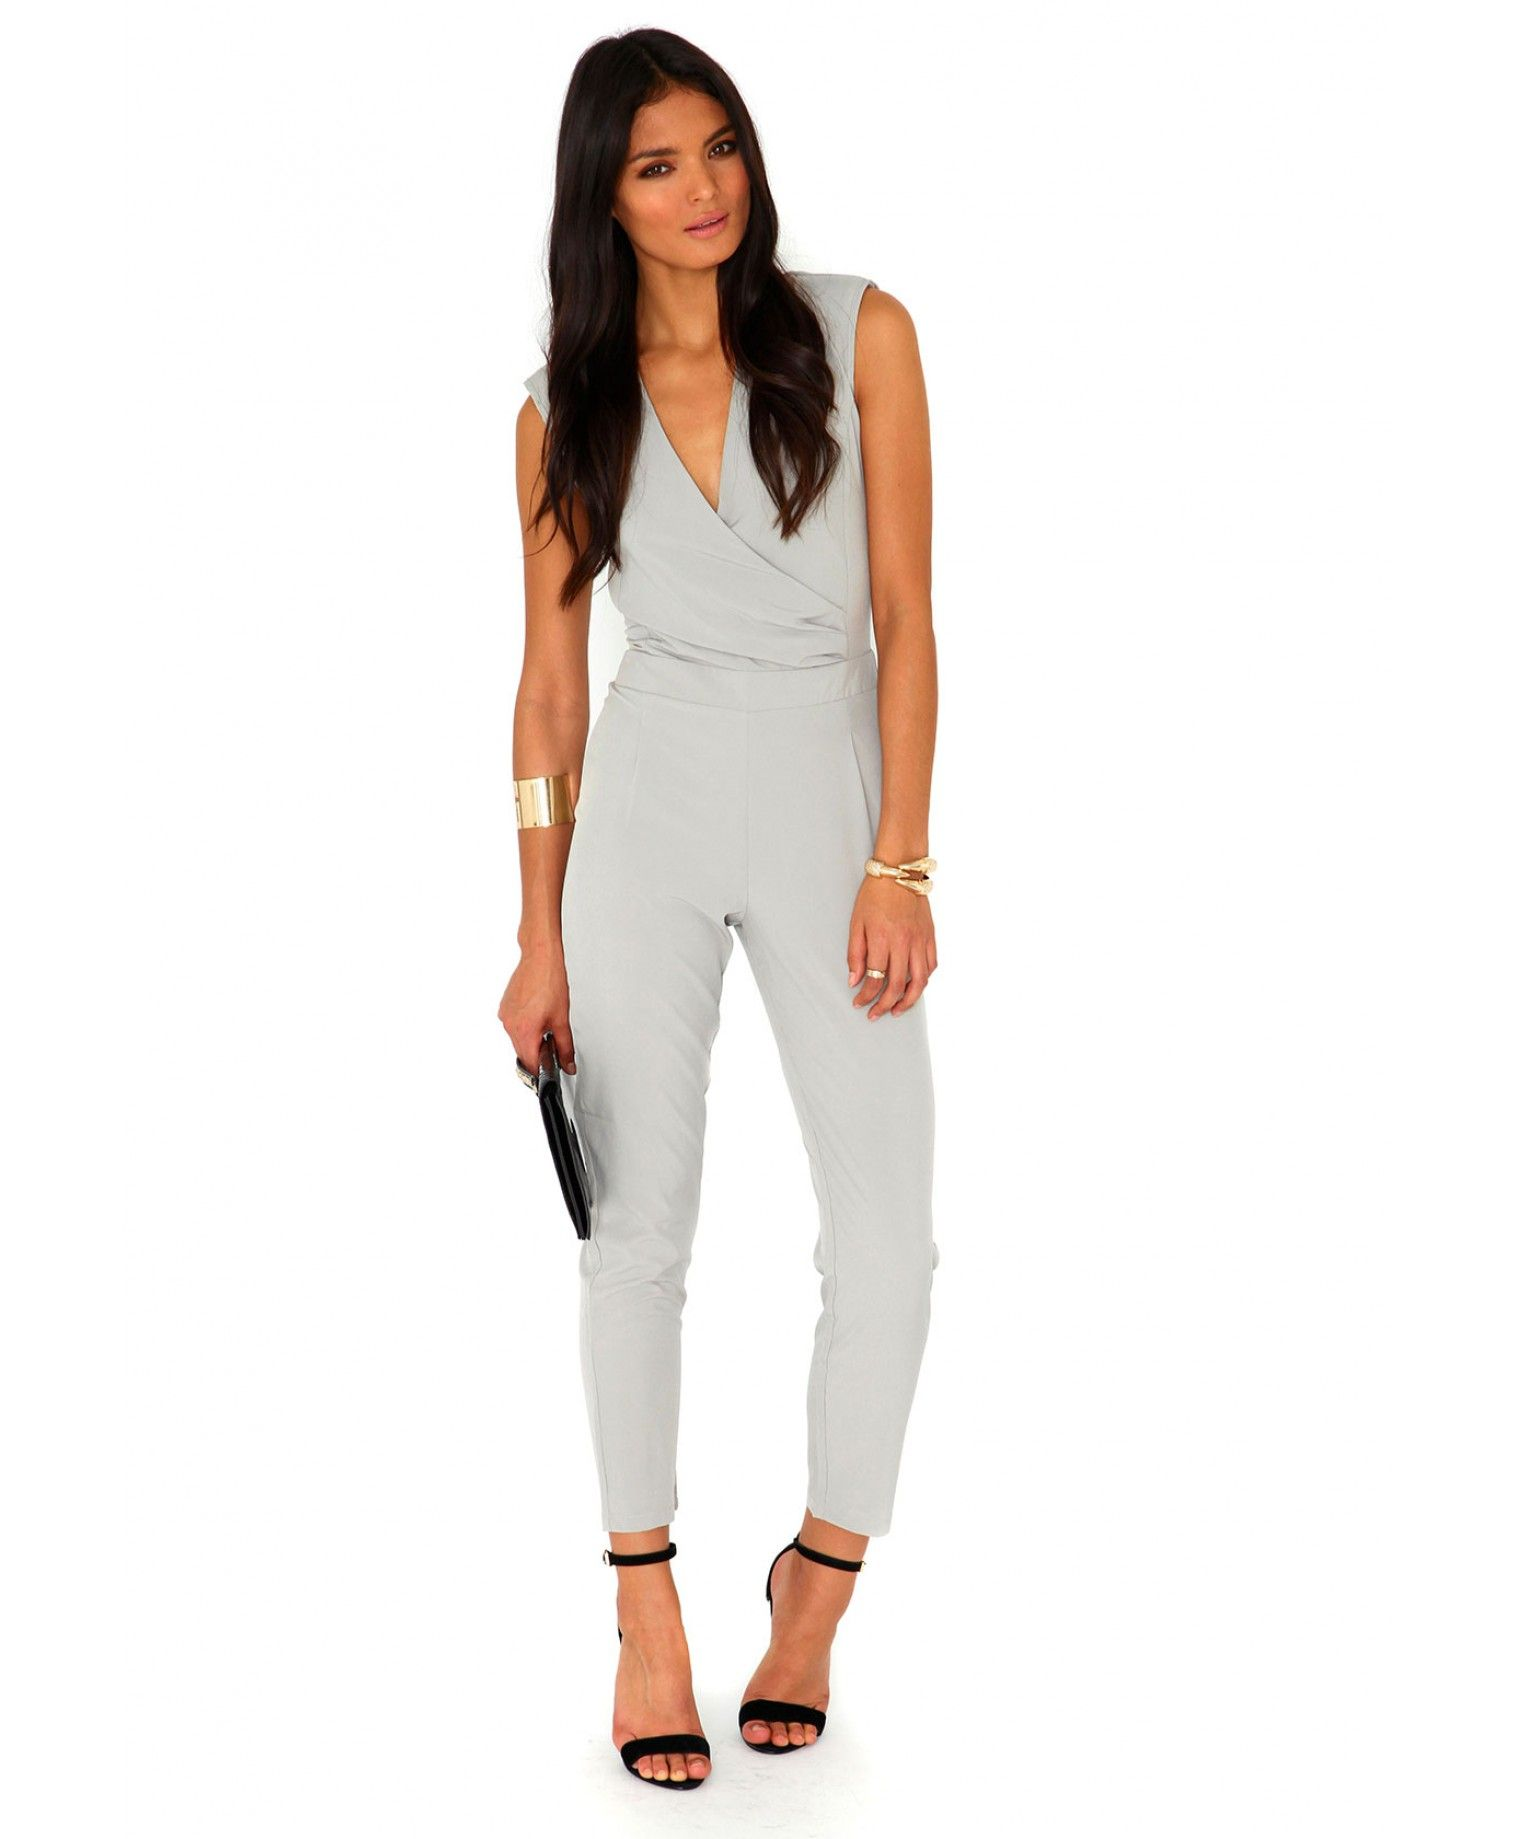 678d289c31d9 Jerma Crossover Tailored Jumpsuit - Jumpsuits and Playsuits - Jumpsuits -  Missguided